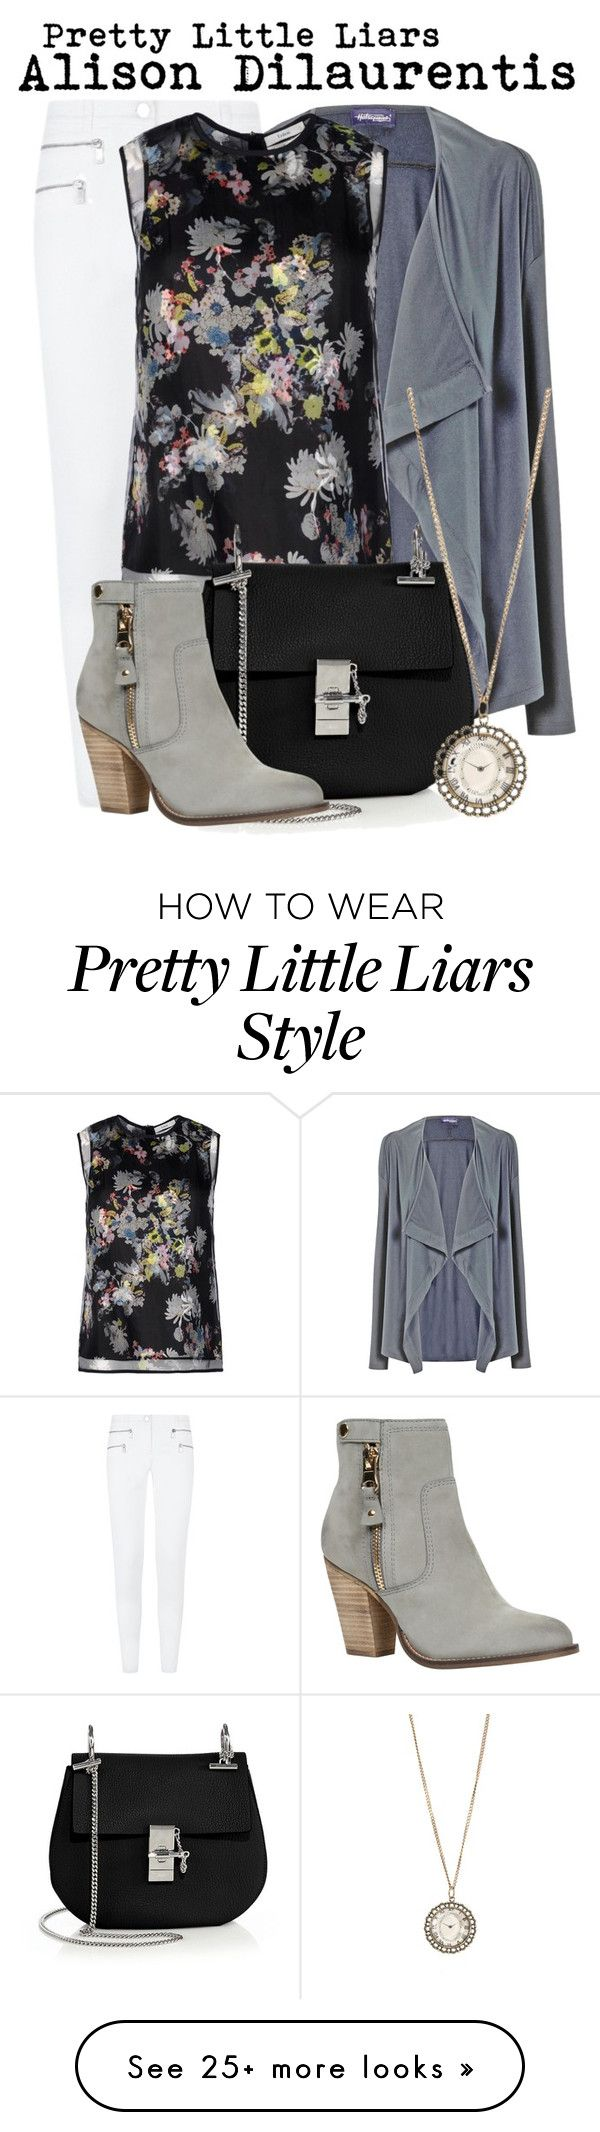 """Pretty Little Liars- Alison Dilaurentis"" by darcy-watson on Polyvore featuring HotSquash, Michael Kors, Erdem, Chloé, ALDO and Aéropostale"